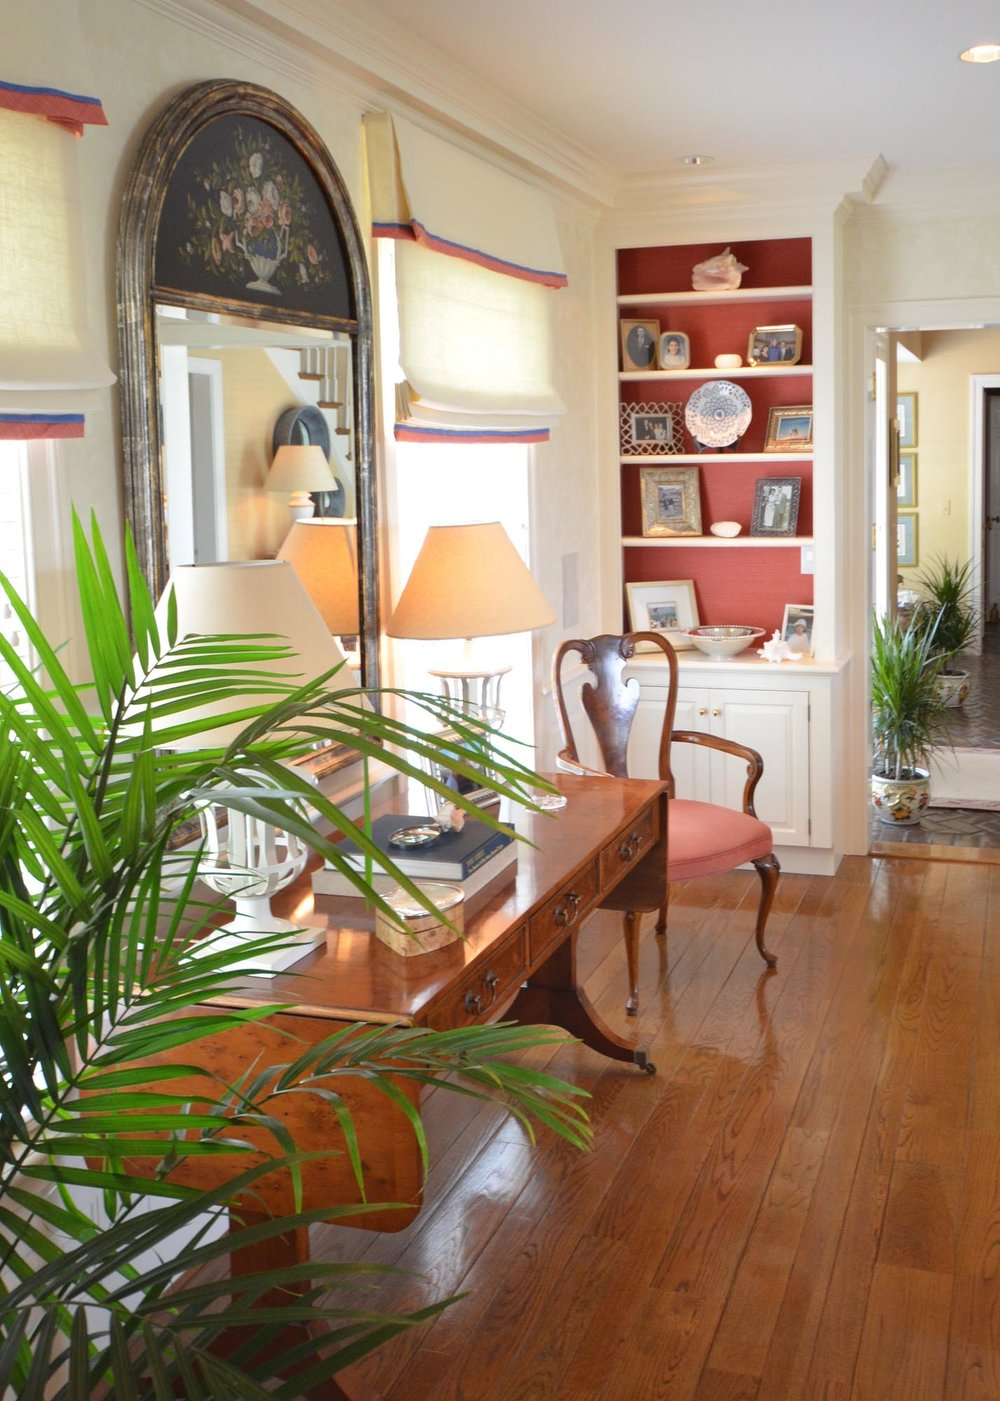 House hall with large mirror desk lamps on wooden table,bookshelves and indoor plant